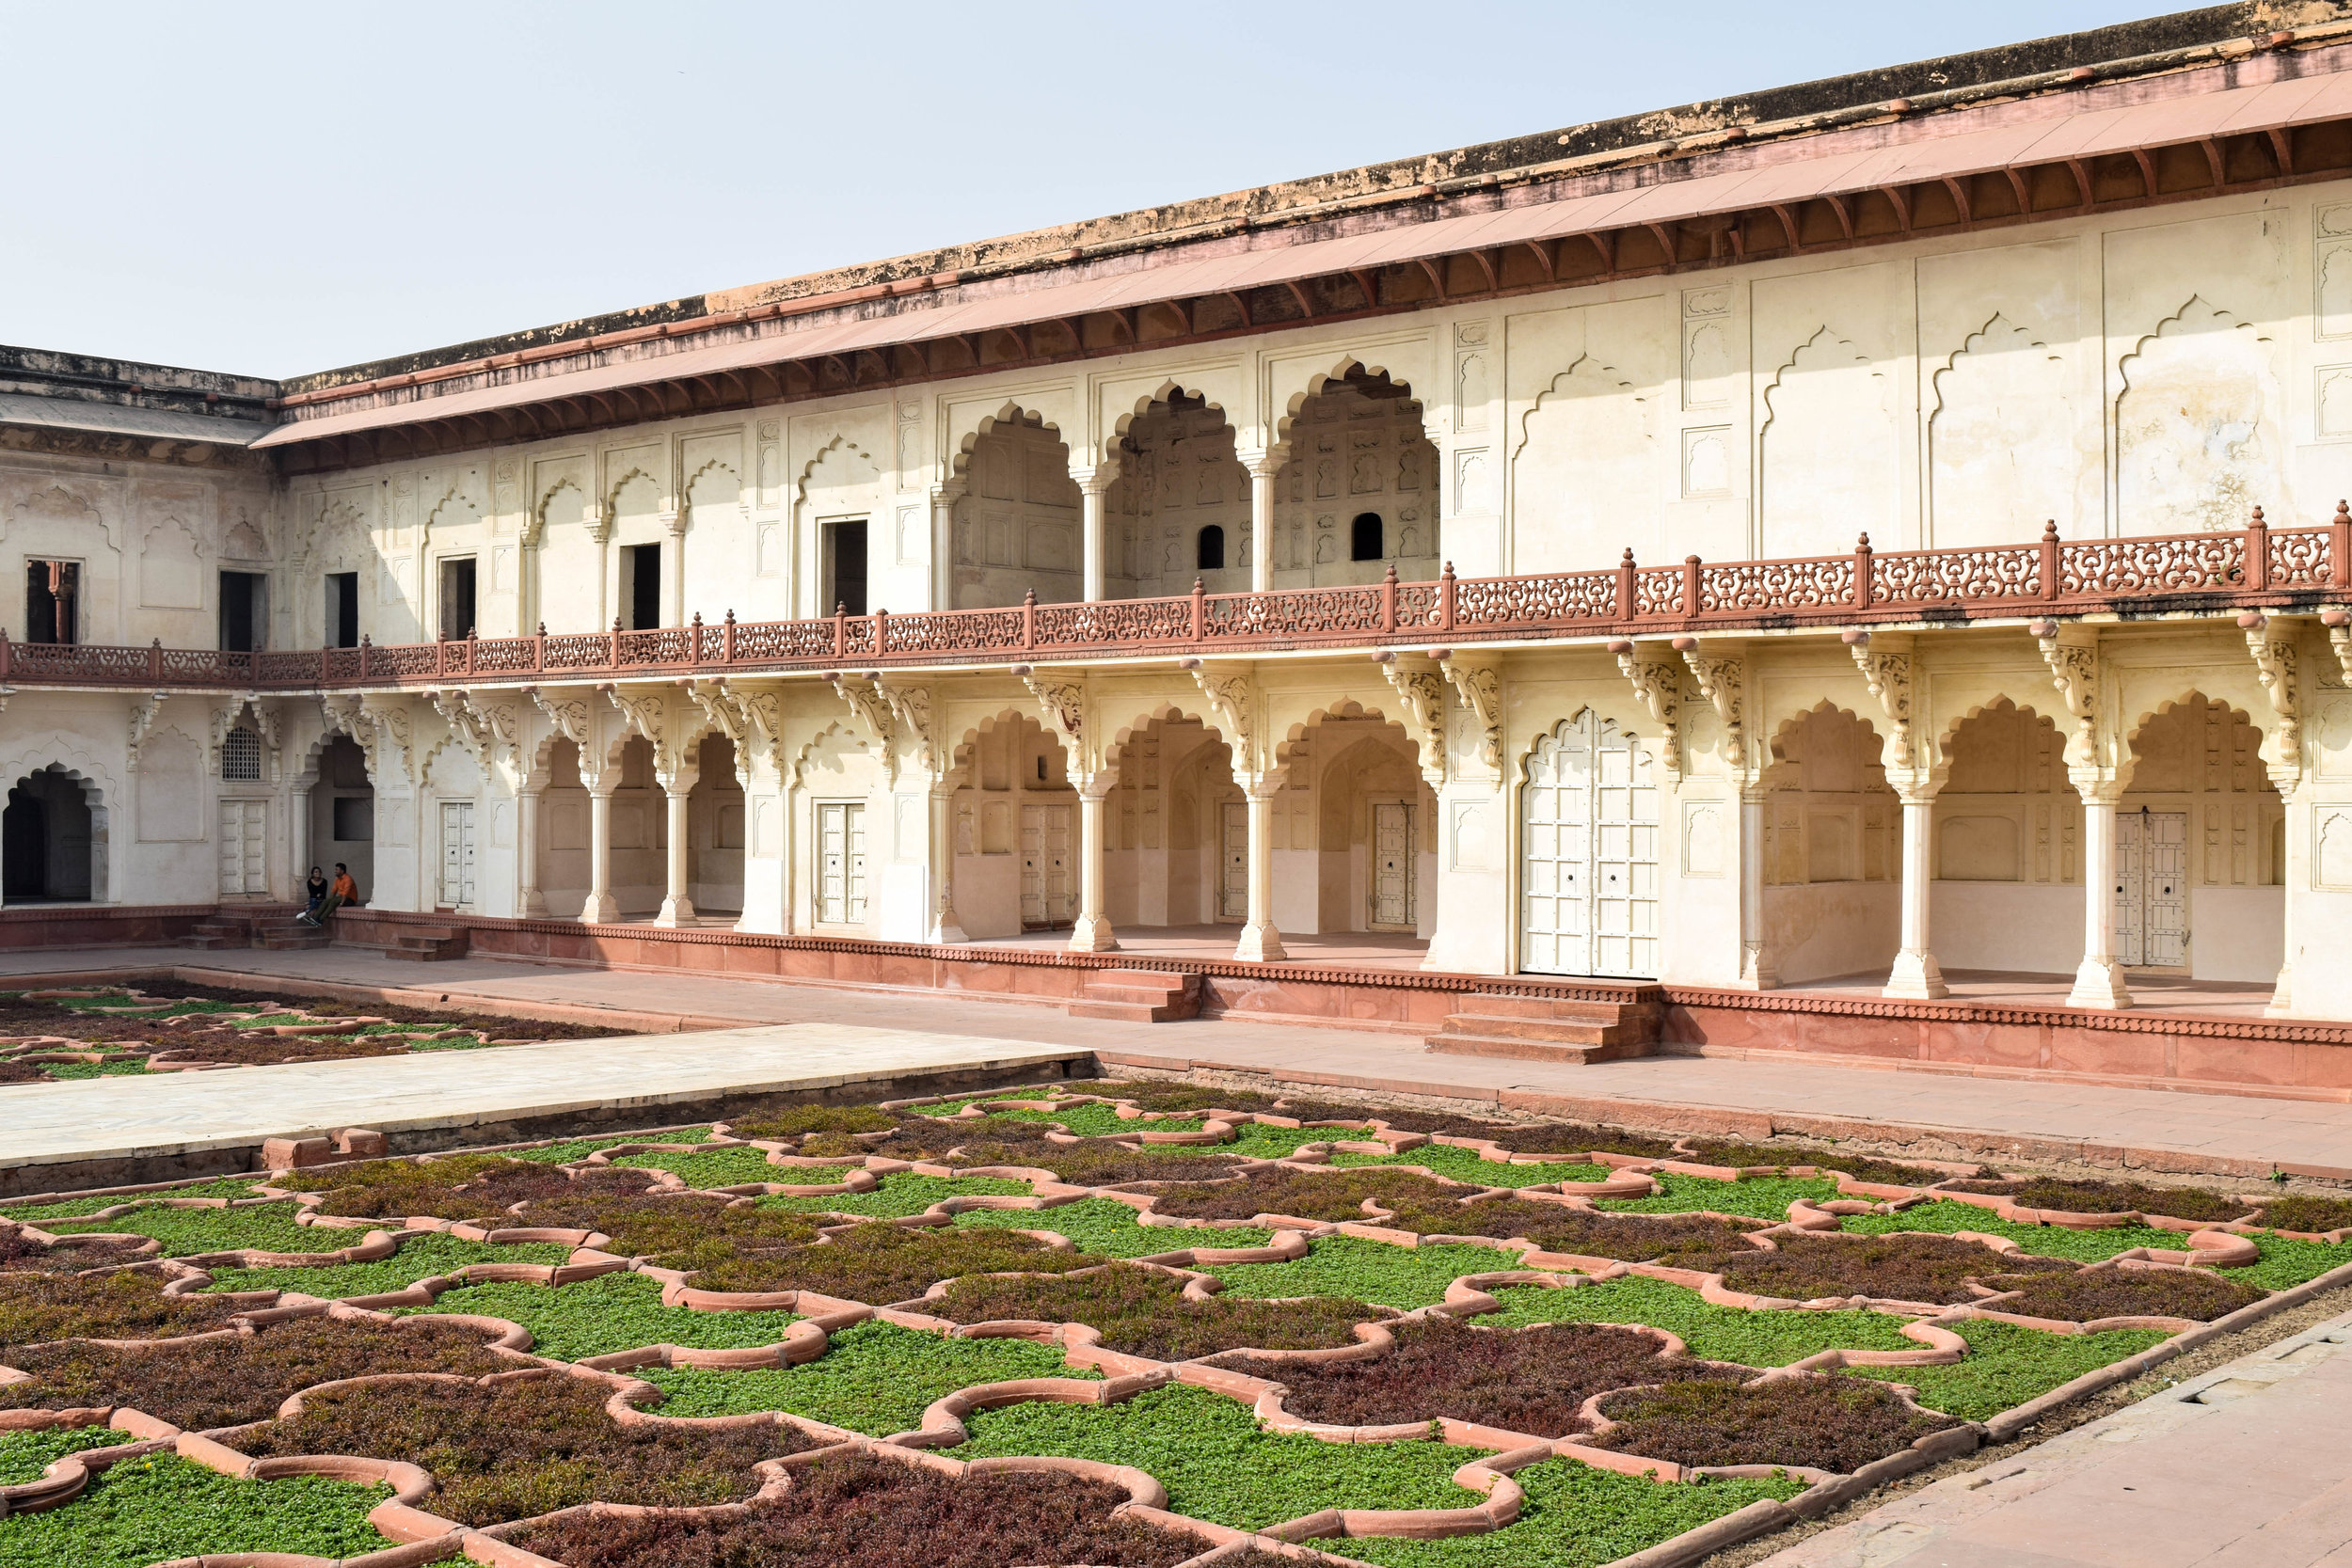 Just writing this is making my blood boil so here's a soothing pic of the Agra Fort gardens.